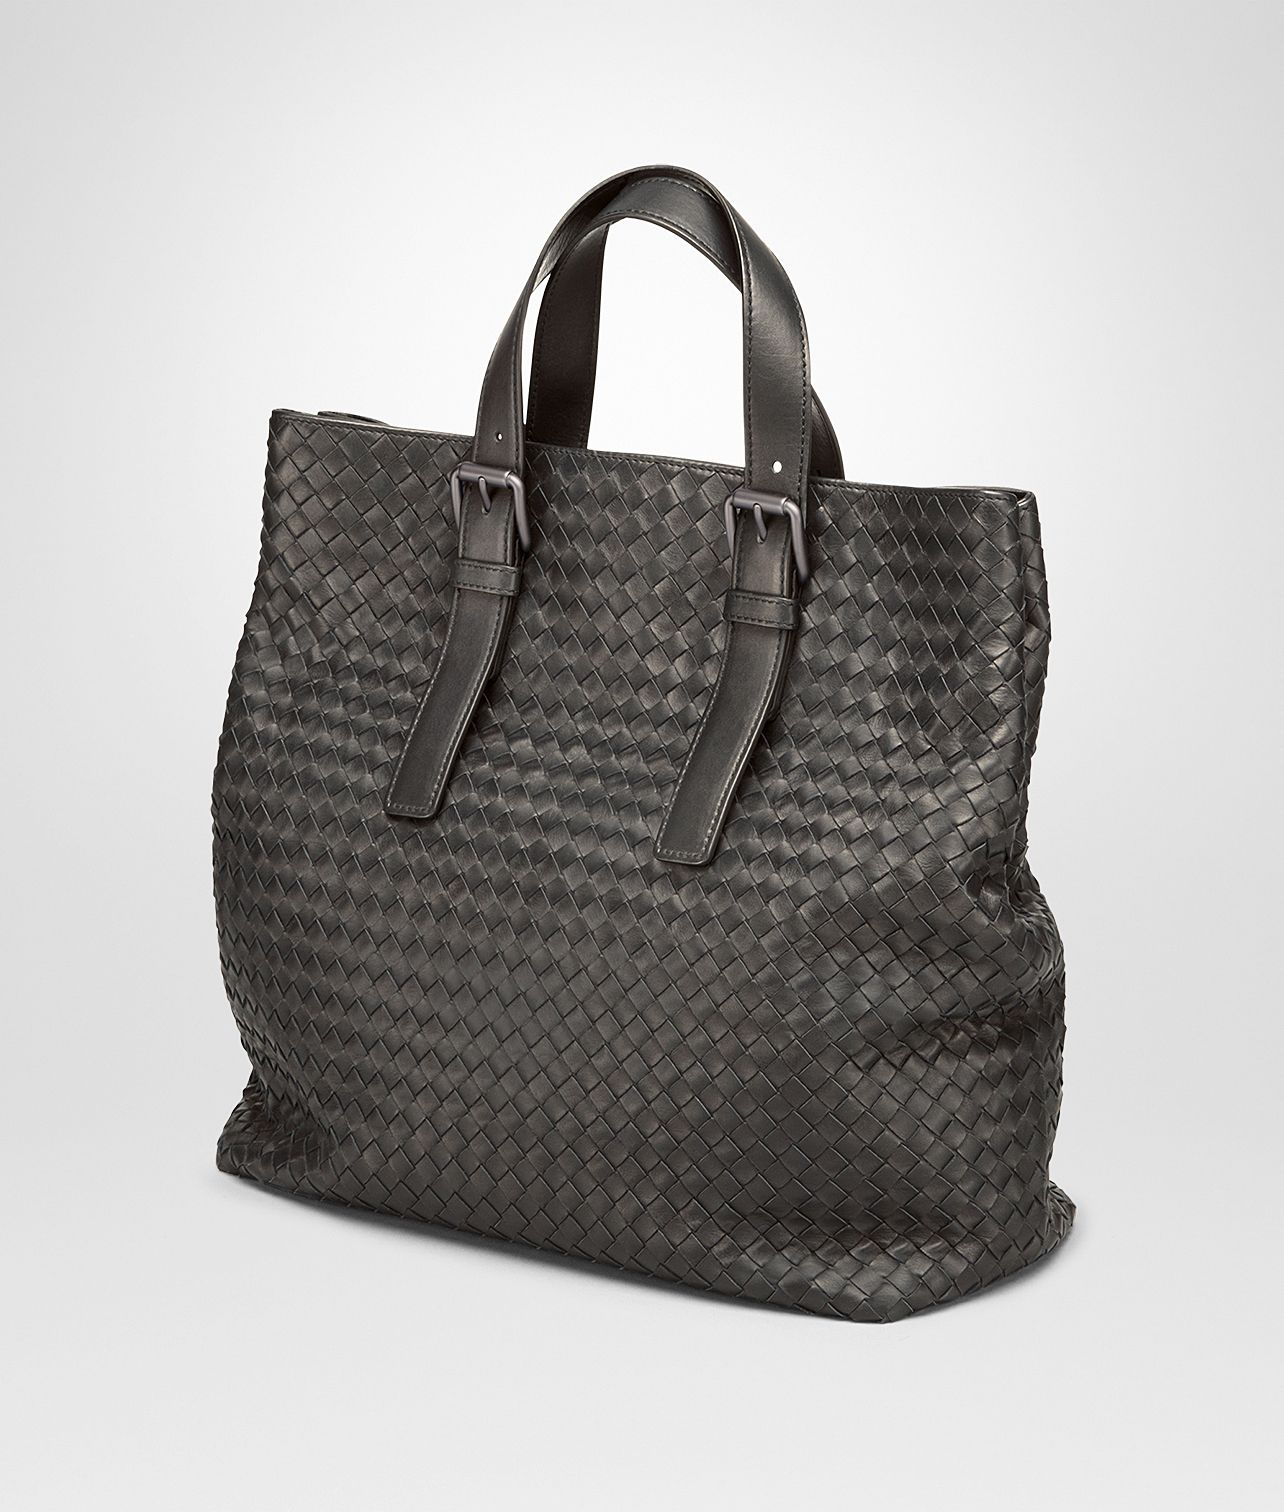 3ad7df1e7e Bottega Veneta Men s TOTE BAG IN MORO INTRECCIATO CALF